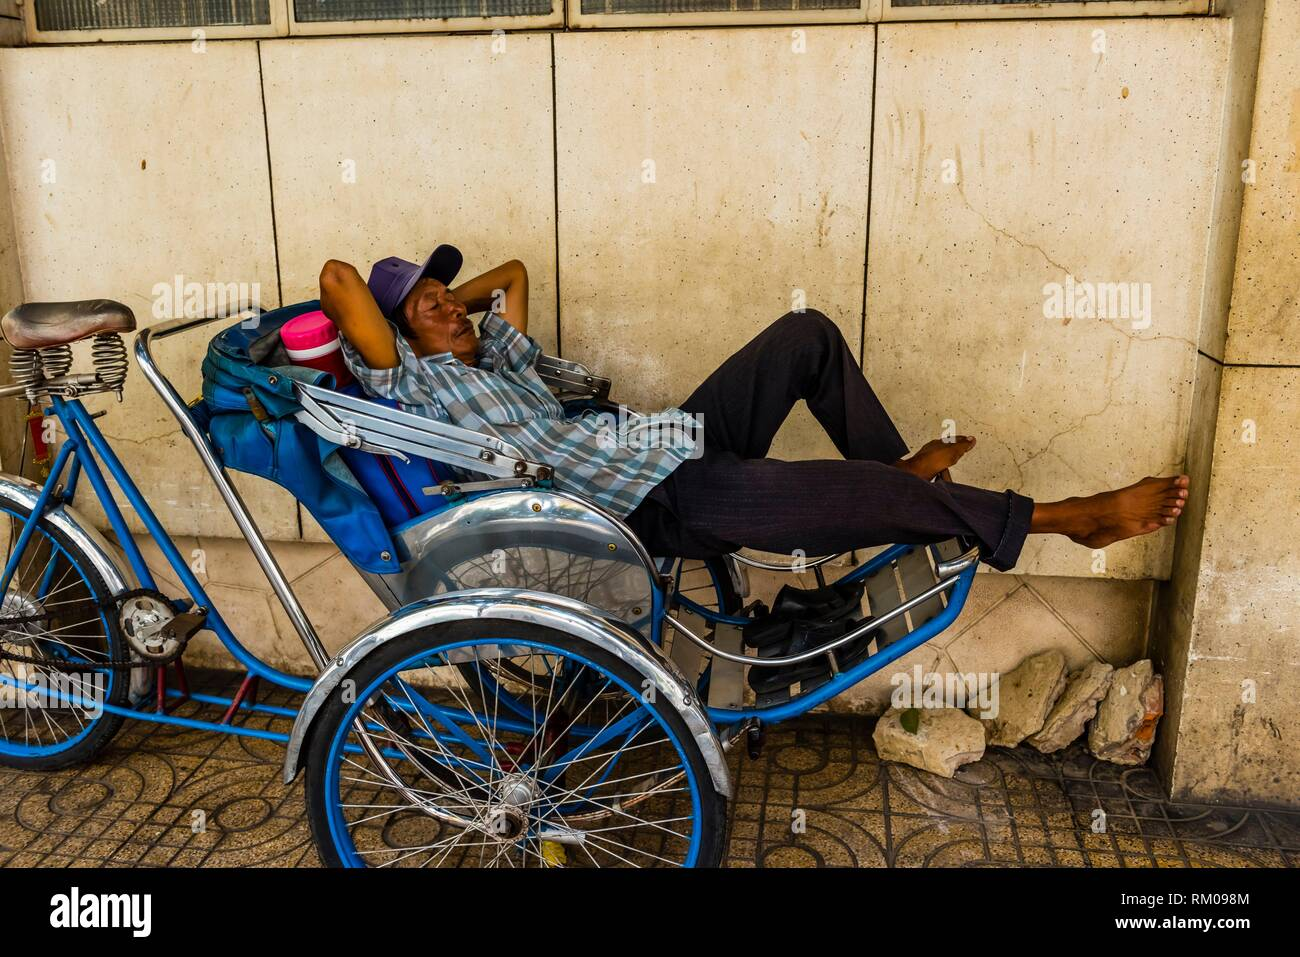 Man taking a nap on a cyclo (a three-wheel bicycle taxi), Ho Chi Minh City (Saigon), Vietnam. - Stock Image